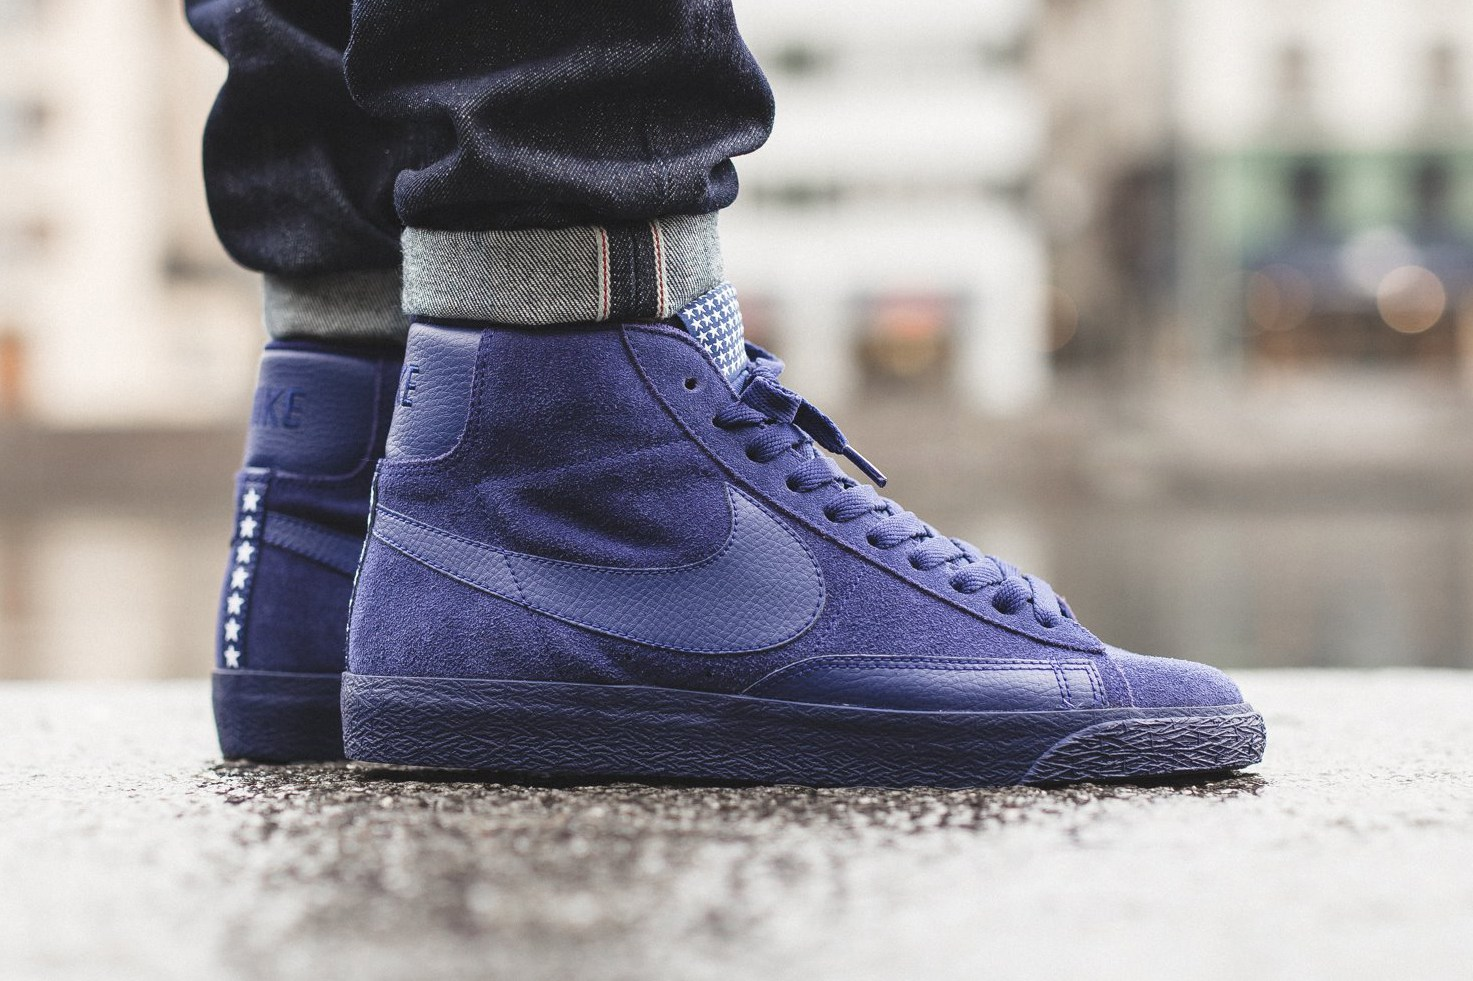 nike-blazer-mid-prm-vntg-loyal-blue-1